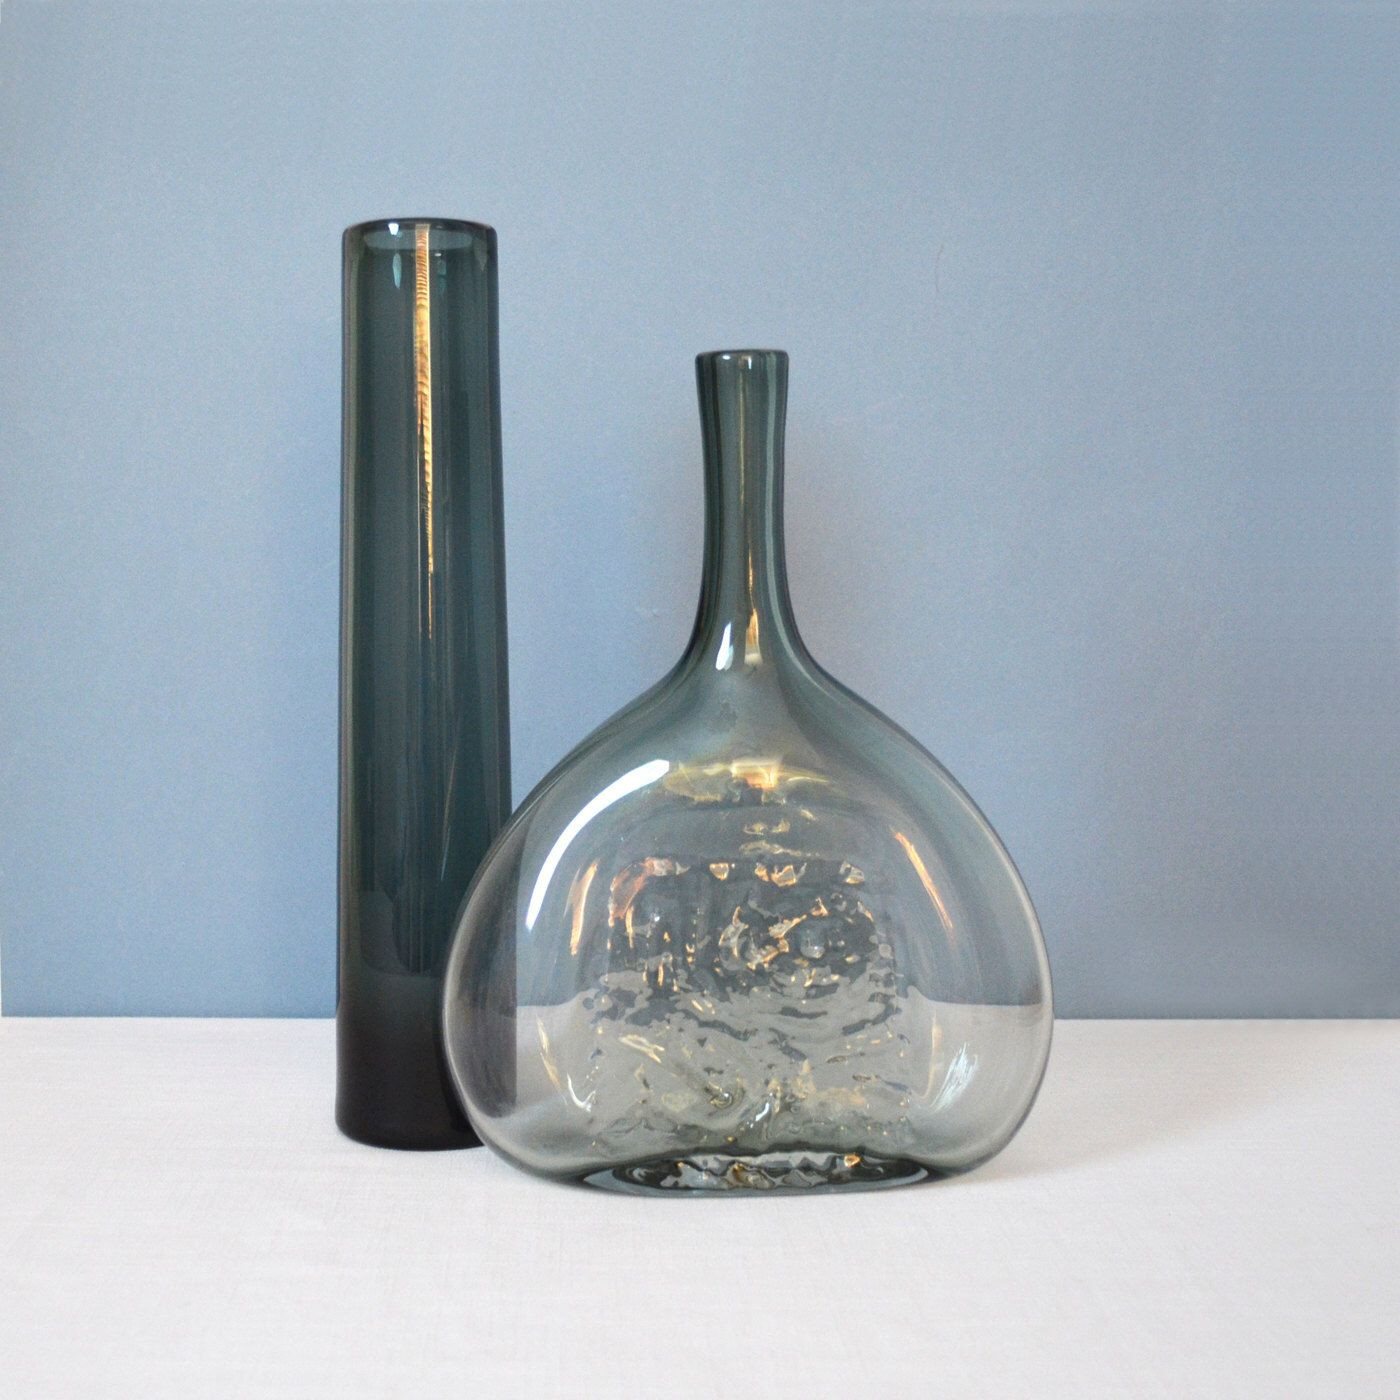 Clear Glass Balloon Vase Of Don Shepherd for Glass America Whirlpool Bottle by Midmodmomstore On with Don Shepherd for Glass America Whirlpool Bottle by Midmodmomstore On Etsy Https Www